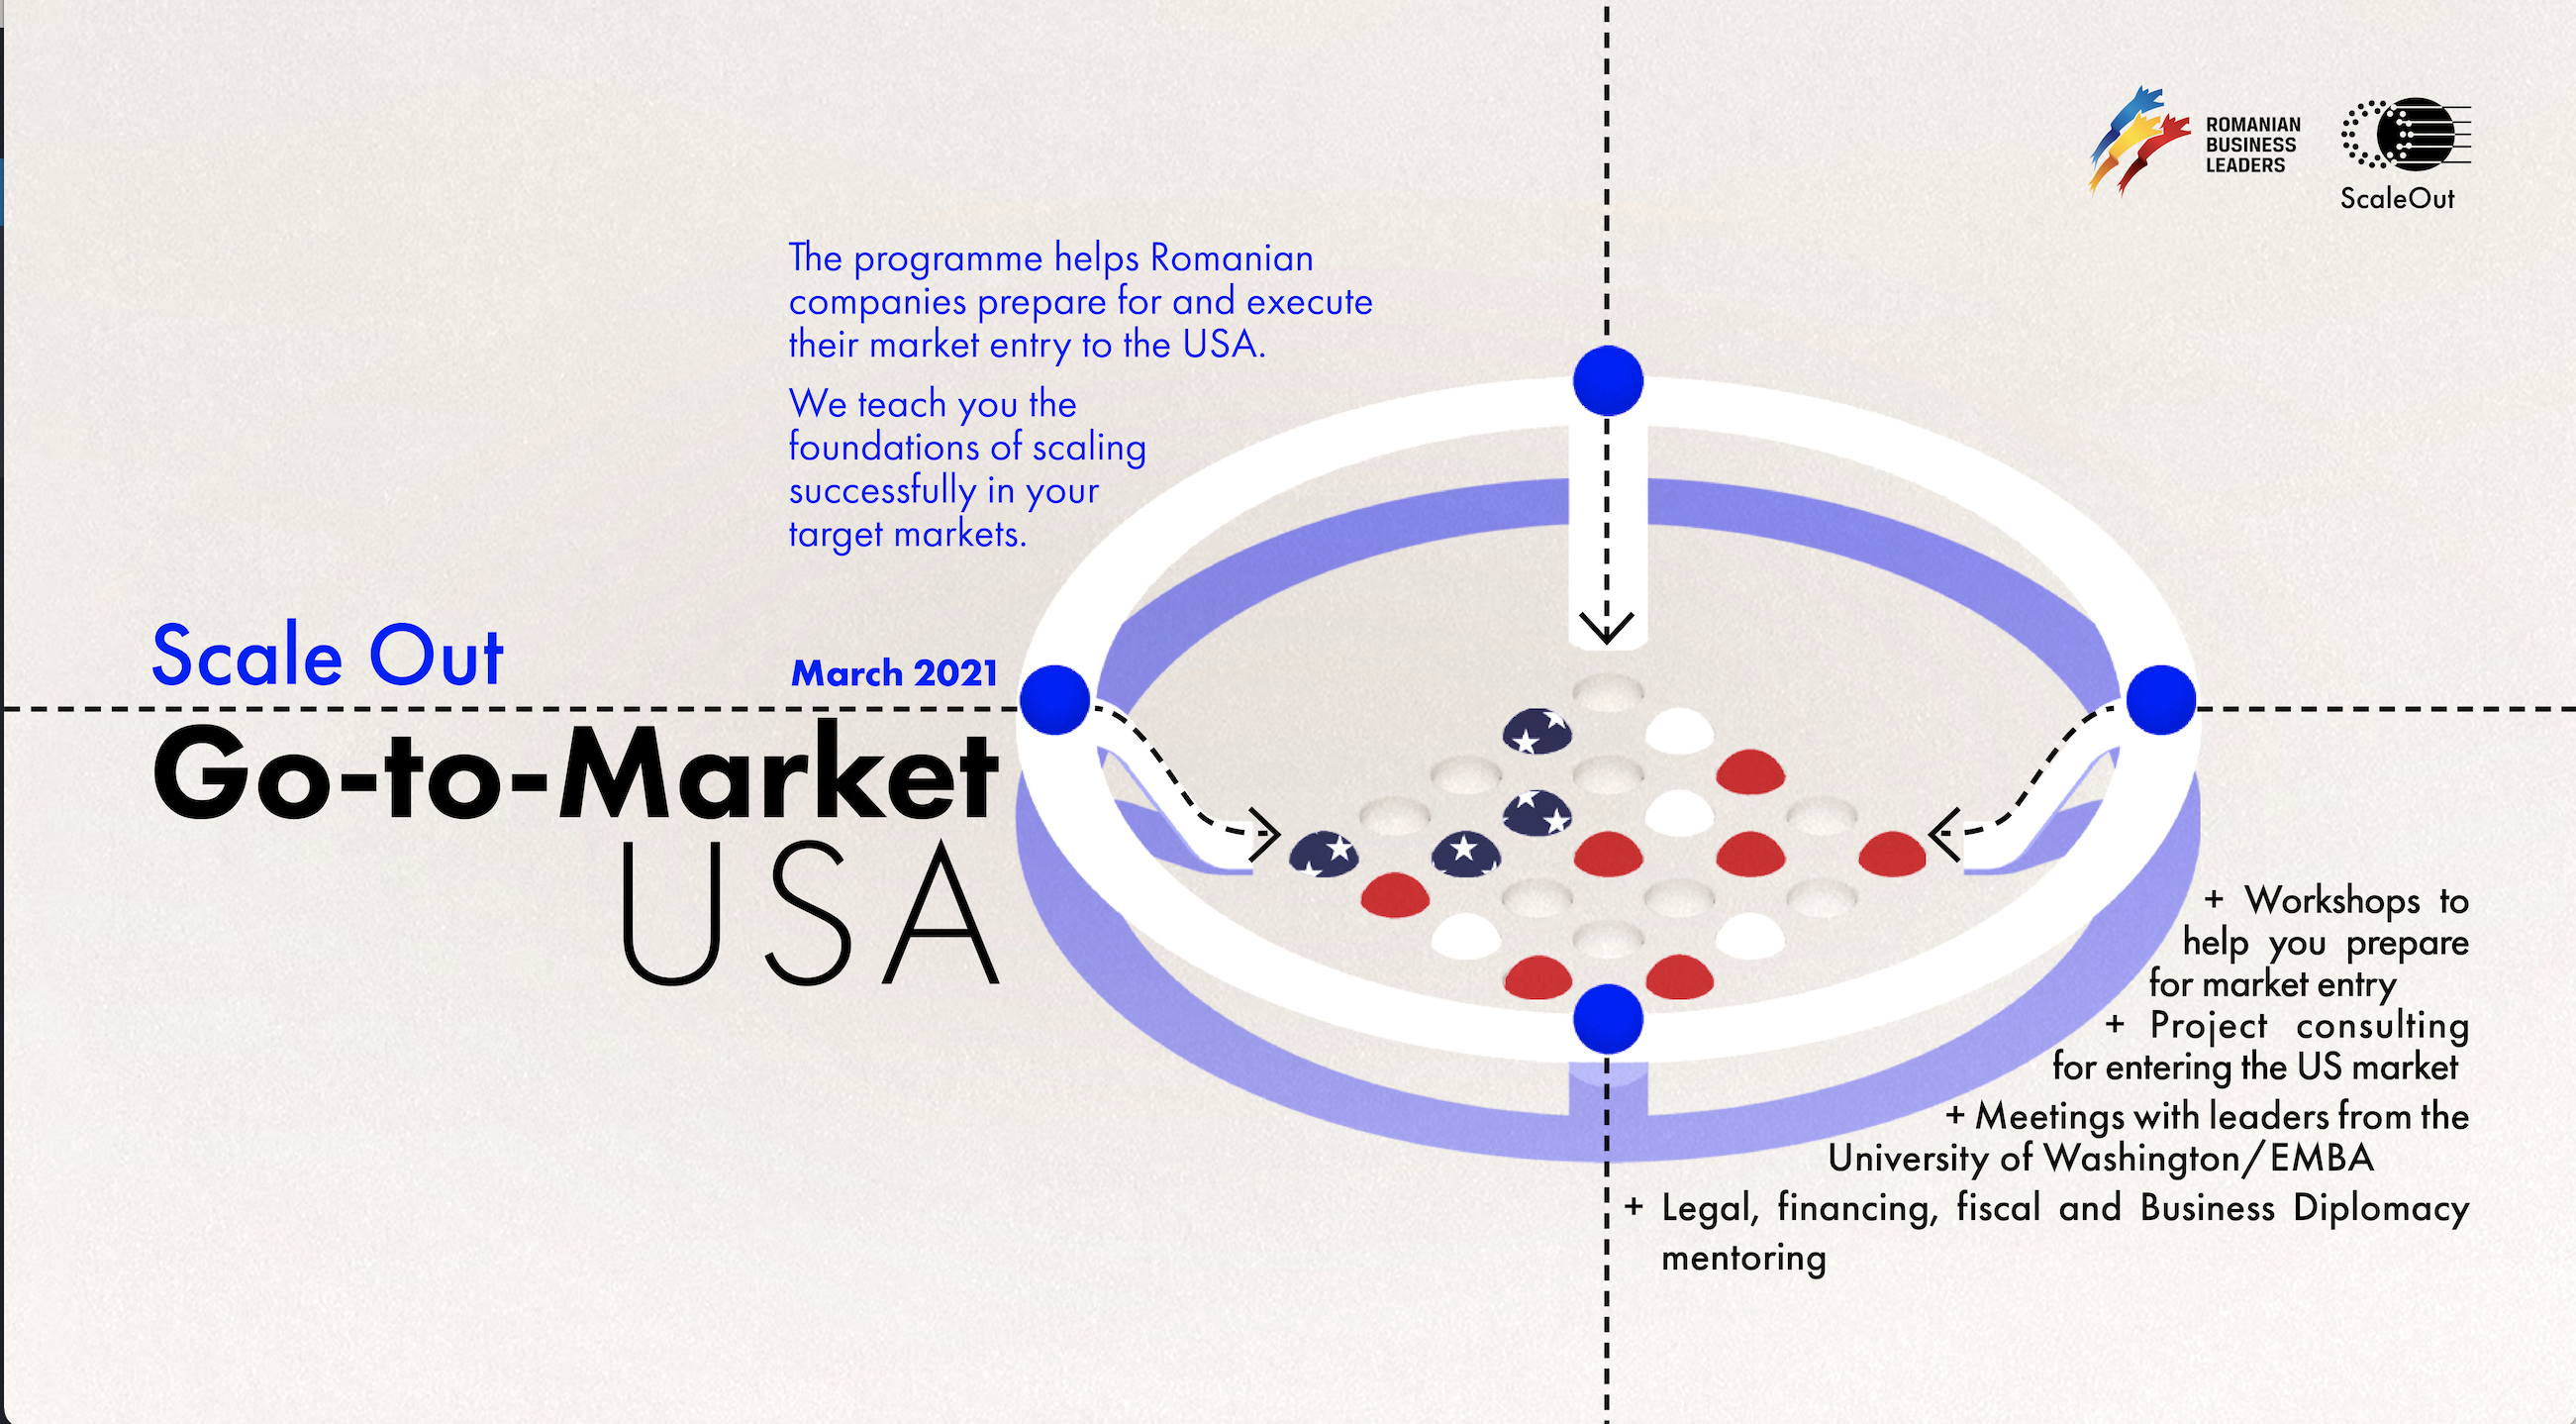 ScaleOut Go-to-Market: USA. A programme to scale Romanian leaders globally